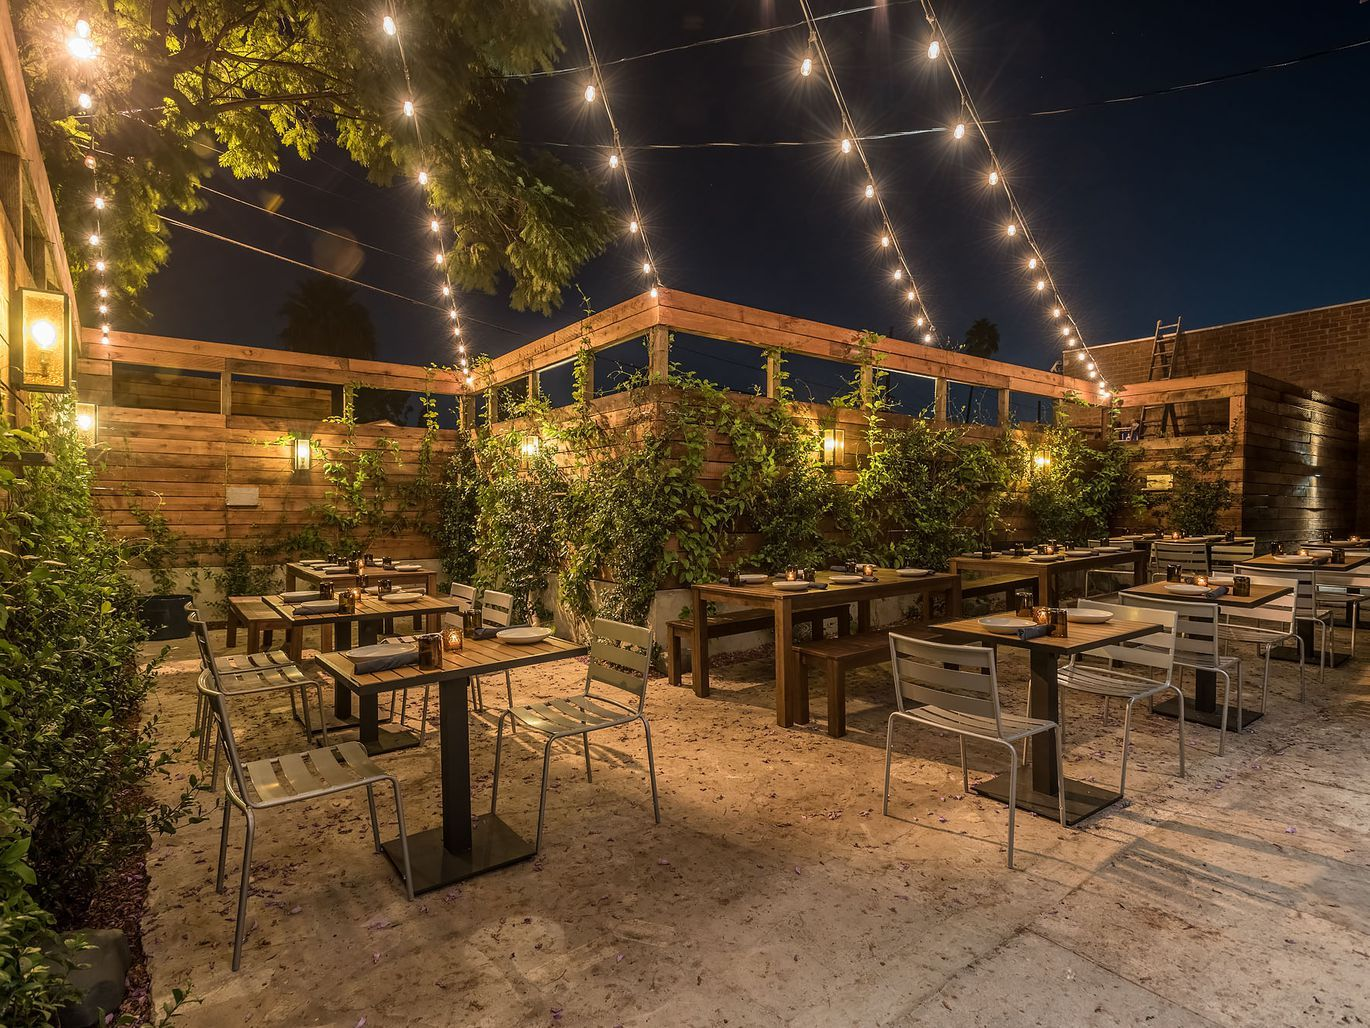 dinner restaurants with outdoor seating near me